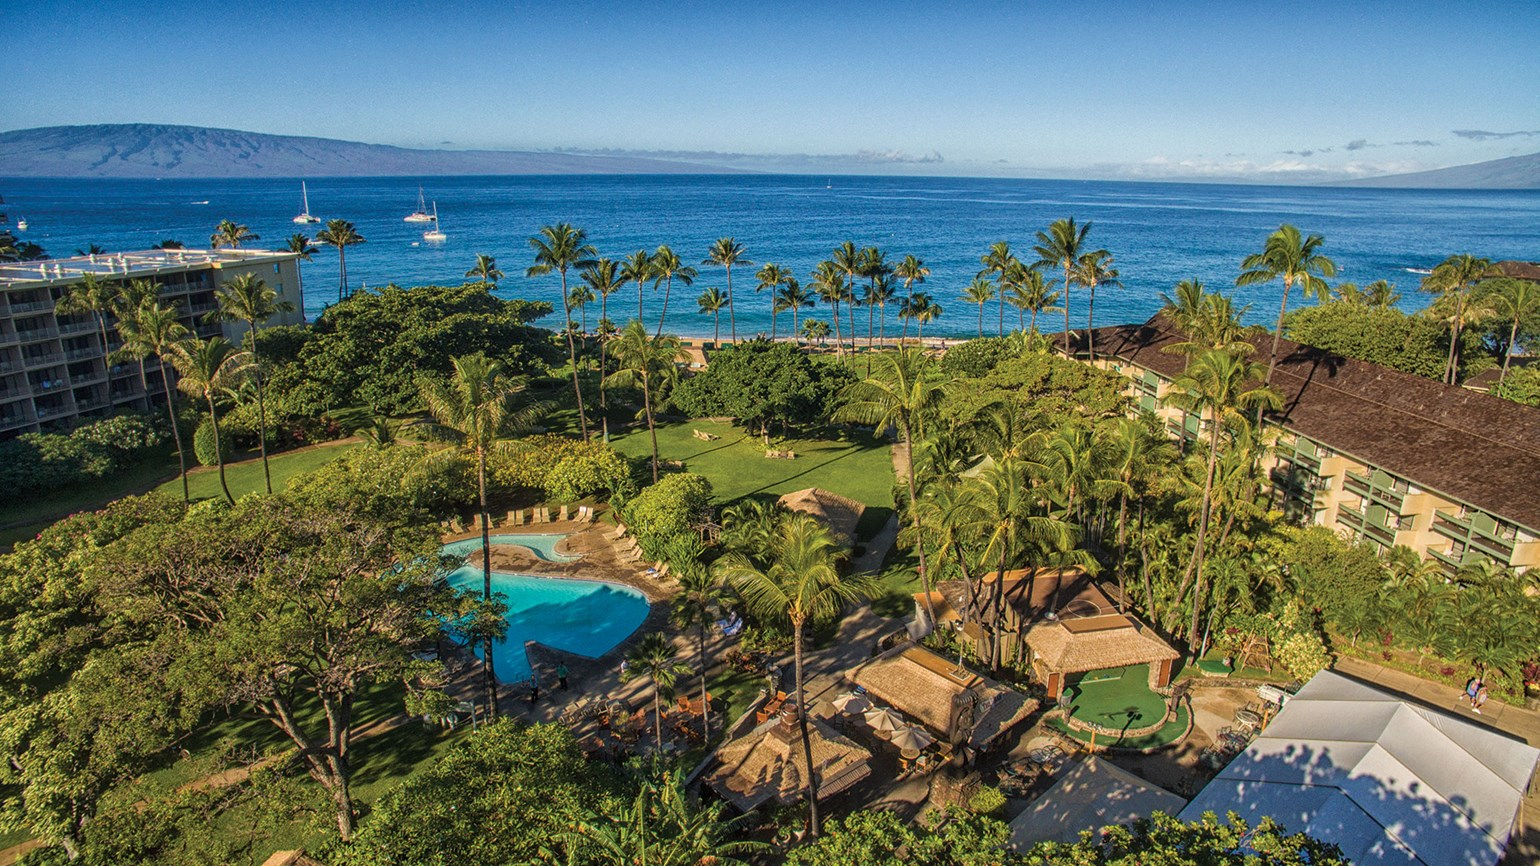 Kaanapali Beach Hotel readies for spring renovation